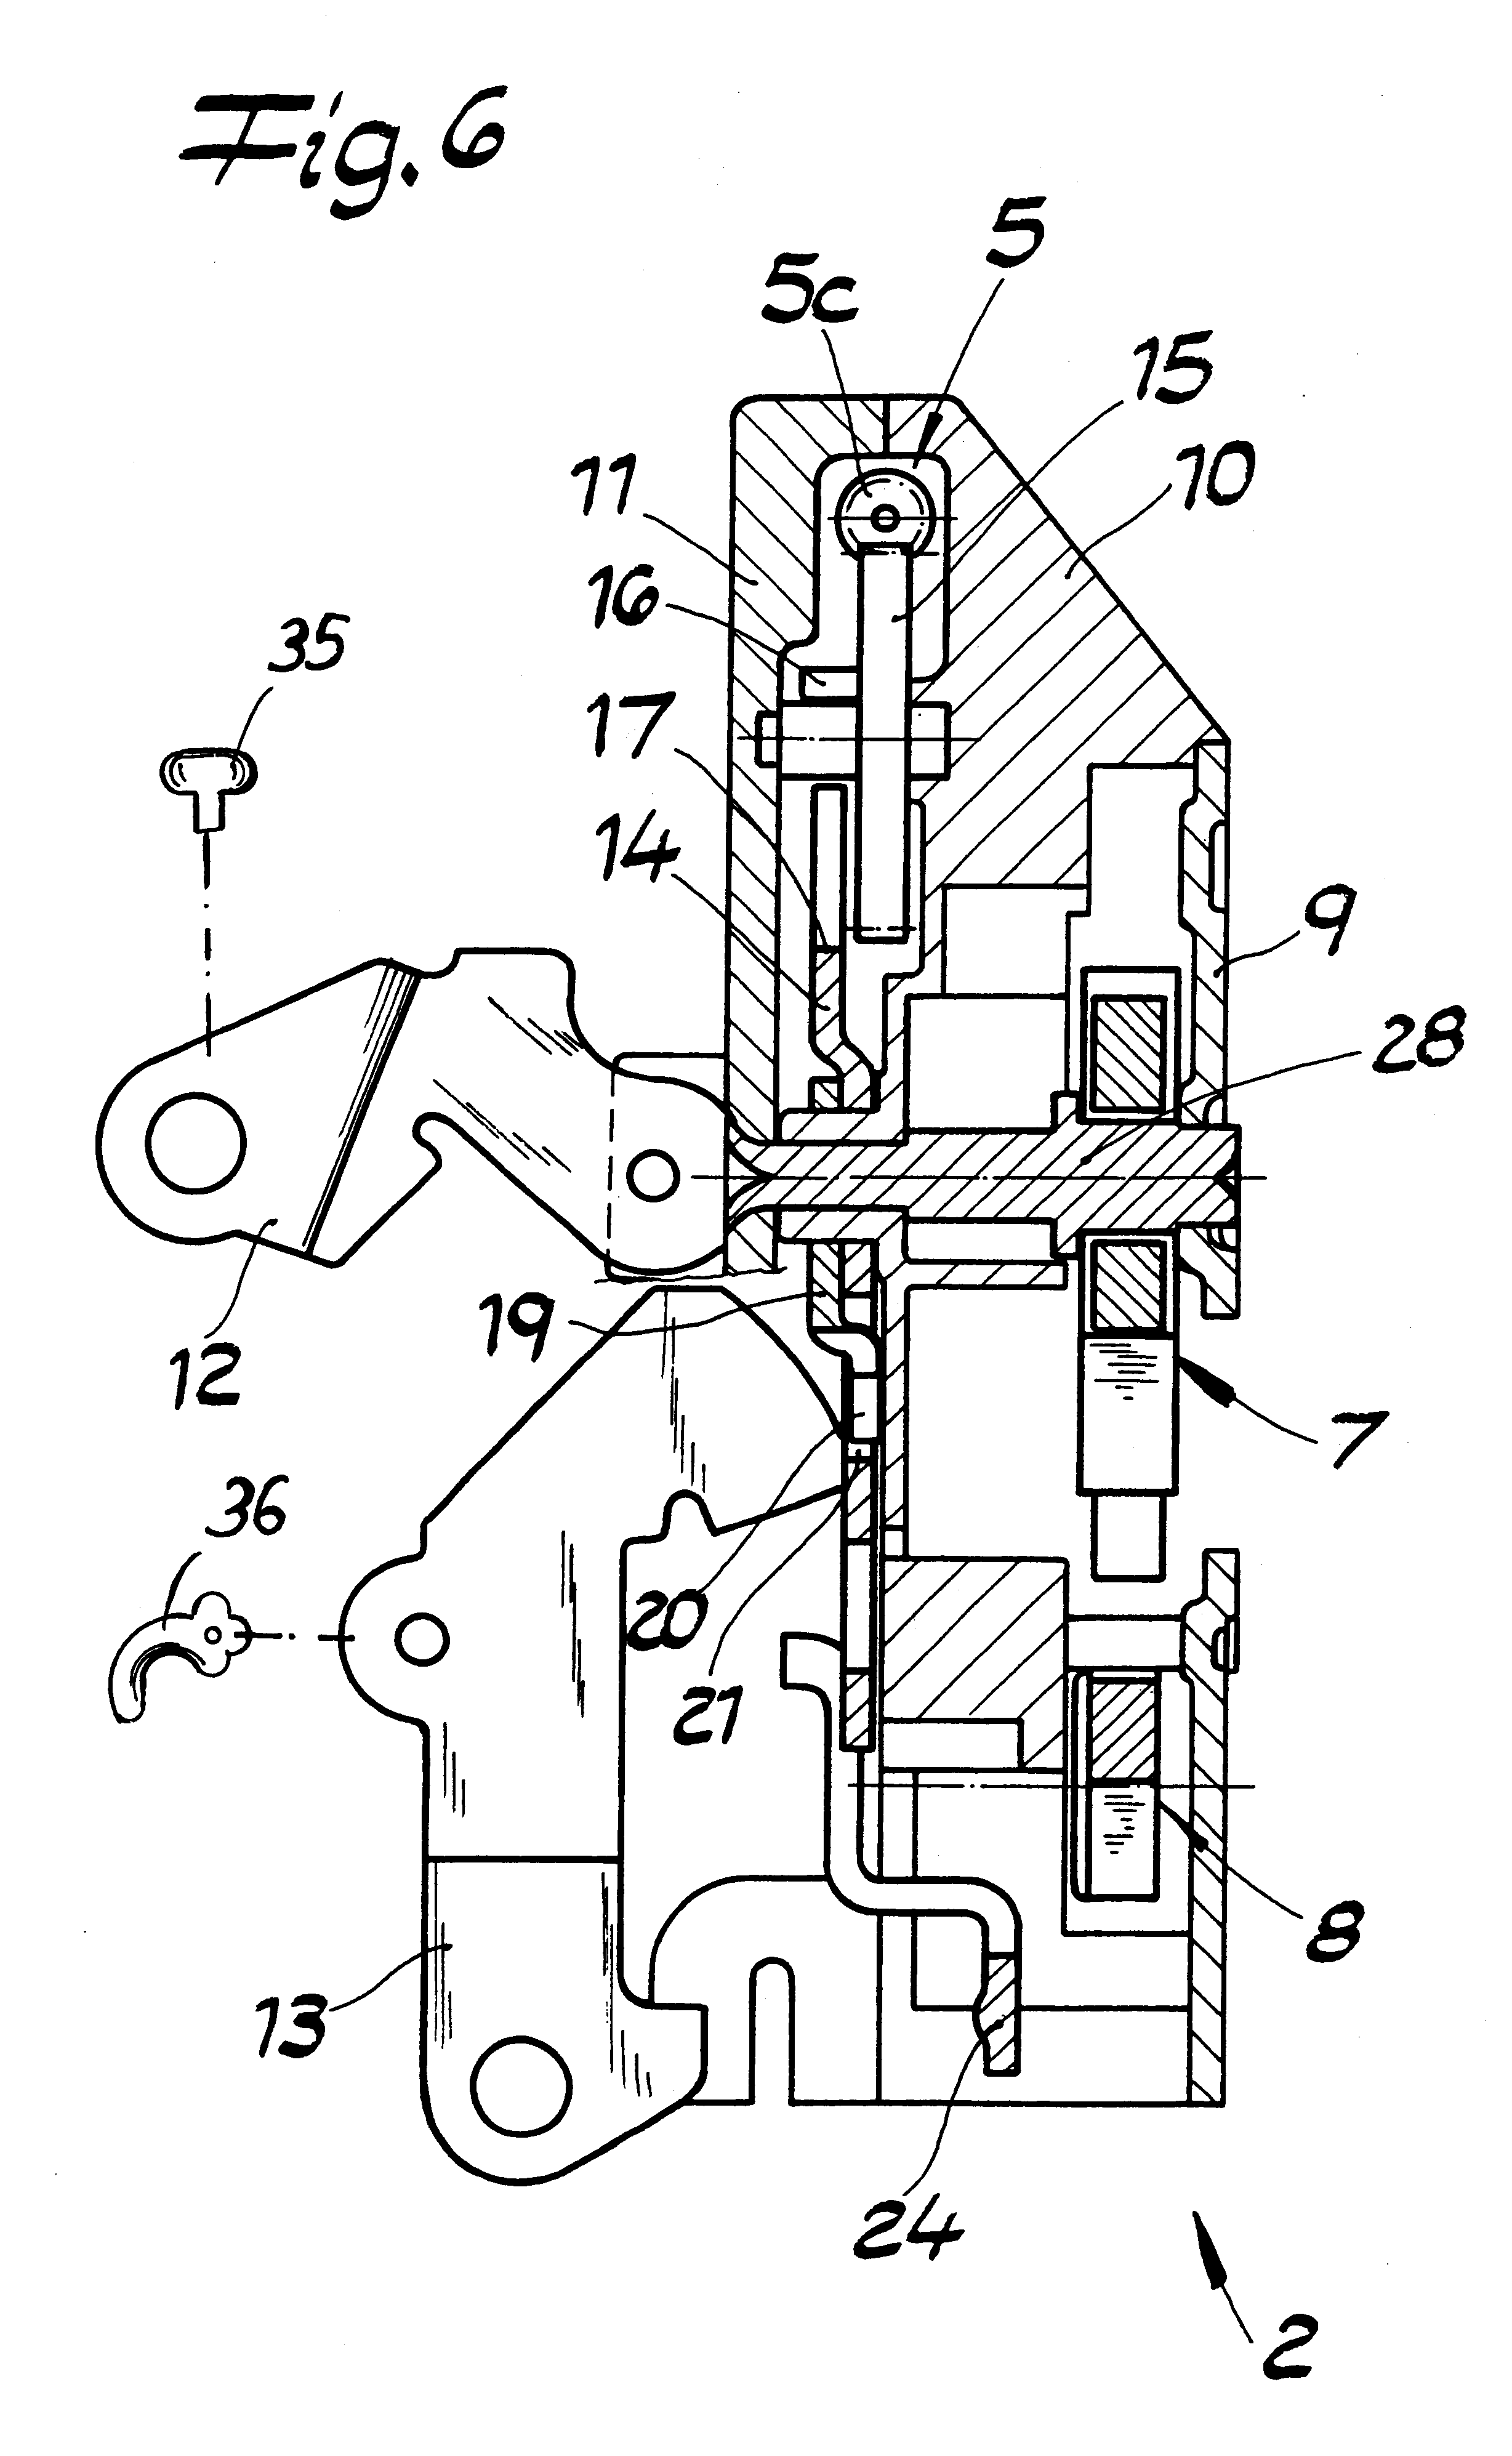 Patent US6338508 - Motor-vehicle latch system with power open